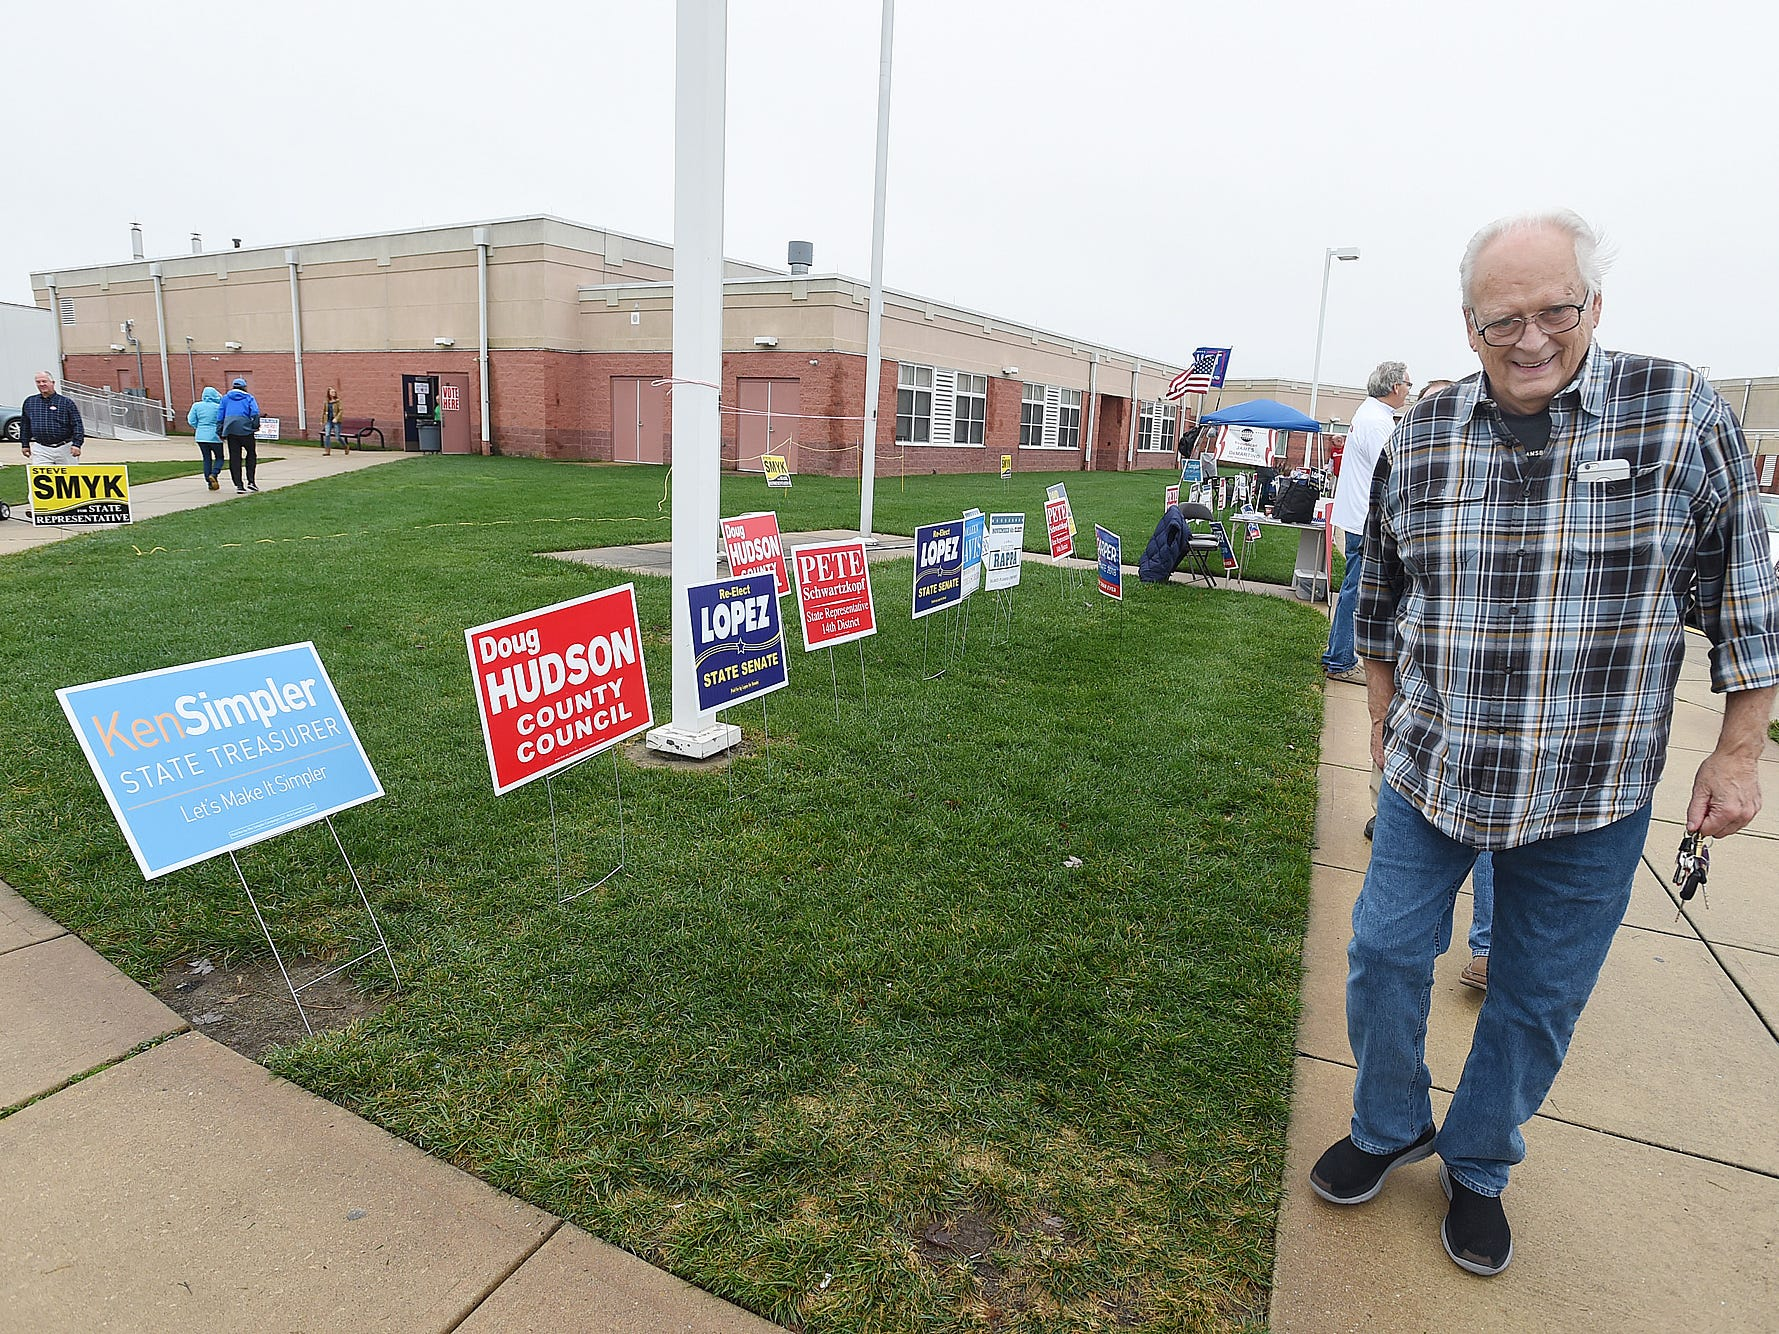 People come to vote at Beacon Middle School near Angola as Voter turnout in eastern Sussex County has been steady at polling places in Rehoboth, Roxana and Angola as candidates still greet supporters for their support.